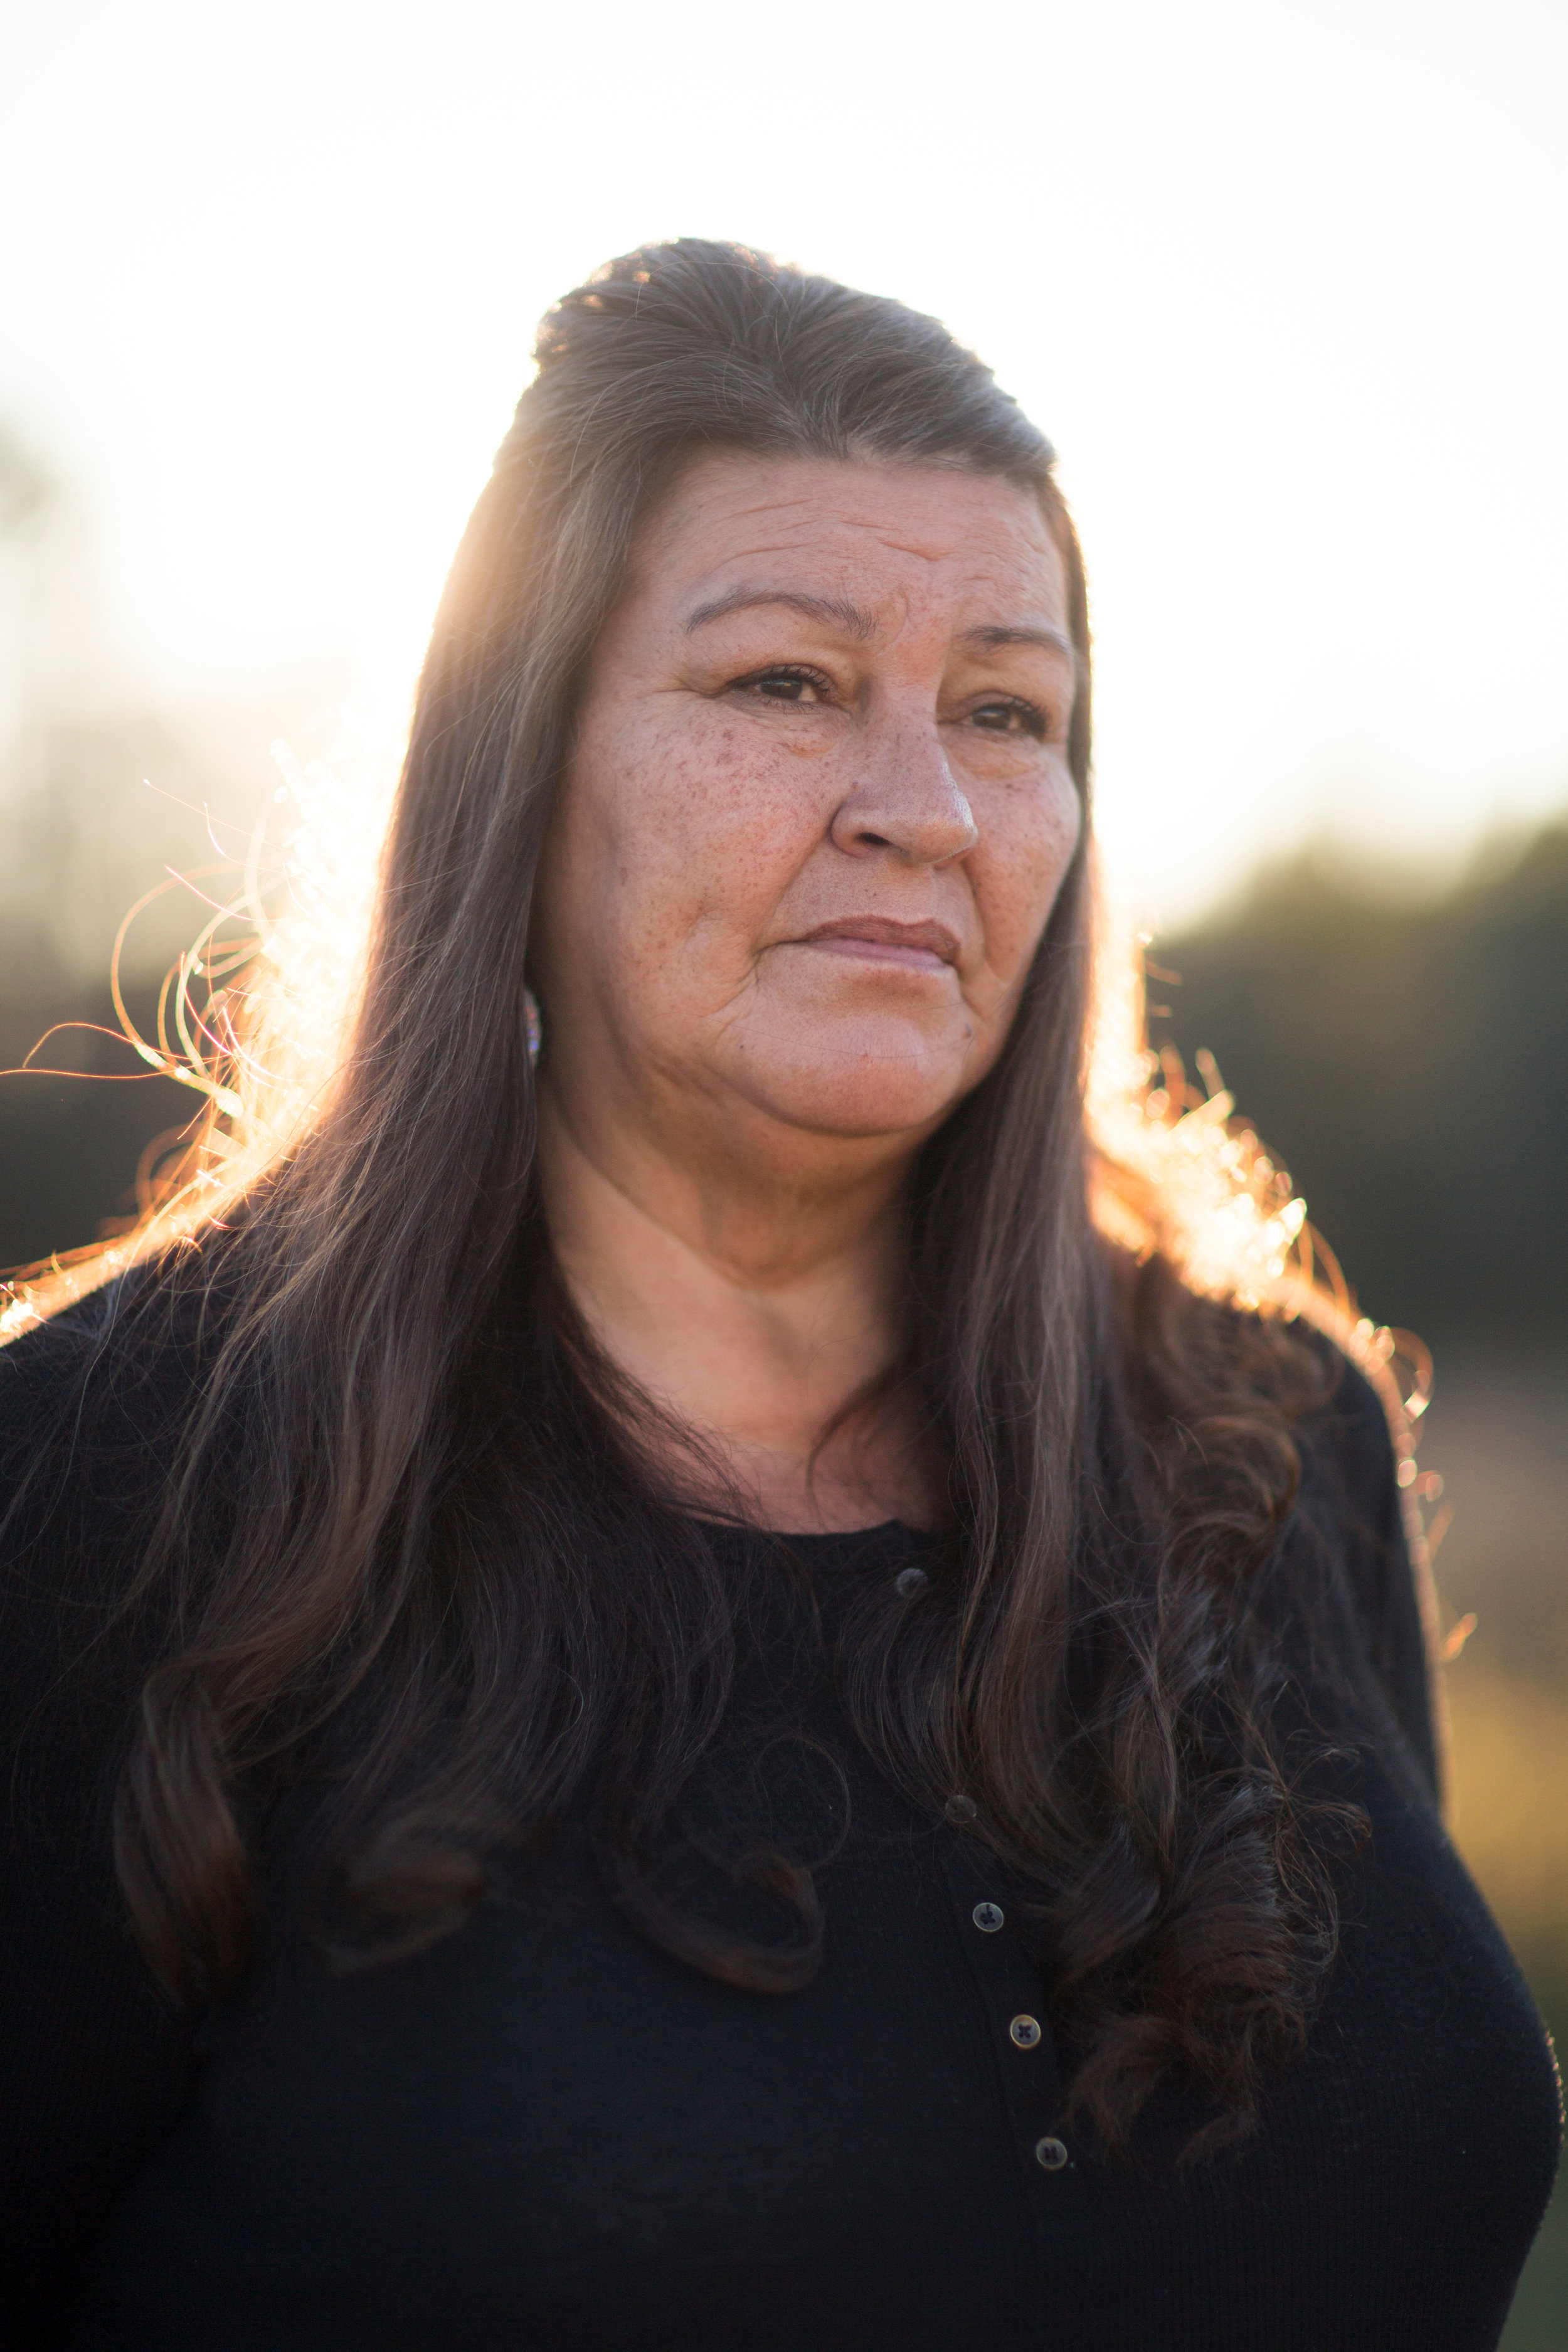 Kathy Boyd is seen here at her home in the Grass Mountain community on the Rosebud Indian Reservation. It took nearly four hours for Boyd's health to be assessed, care to be determined, and life flight to be approved before she was transfered nearly 200 miles east to a hospital in Rapid City.